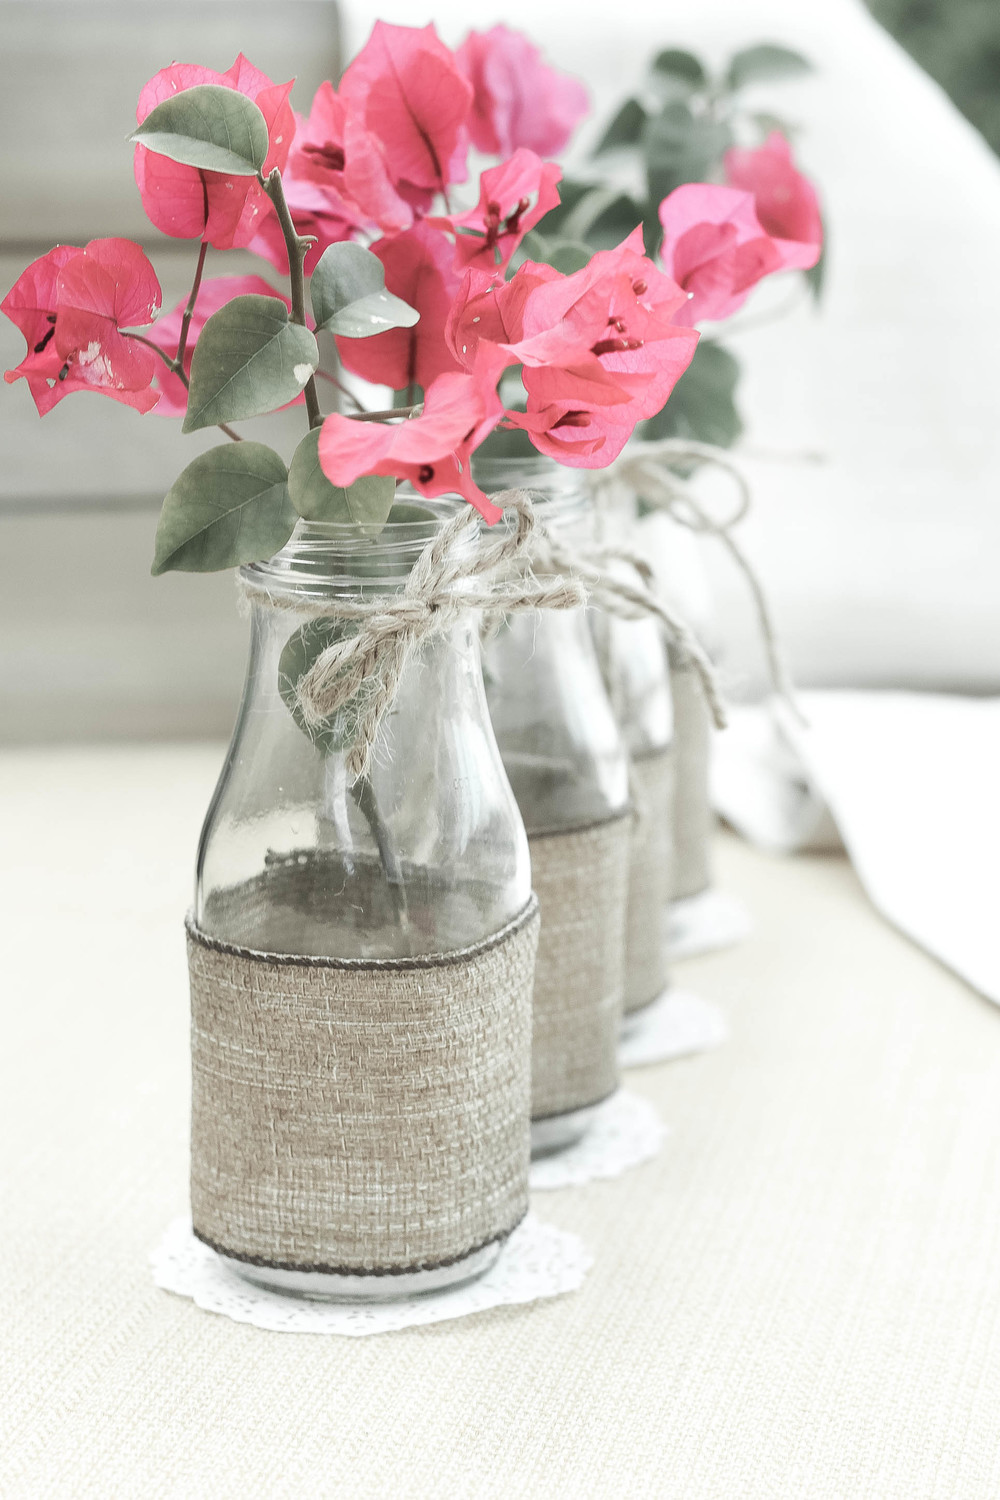 Diy recycle glass bottles into flower vases the party preppers recycled glasses flower vases party decorations reviewsmspy